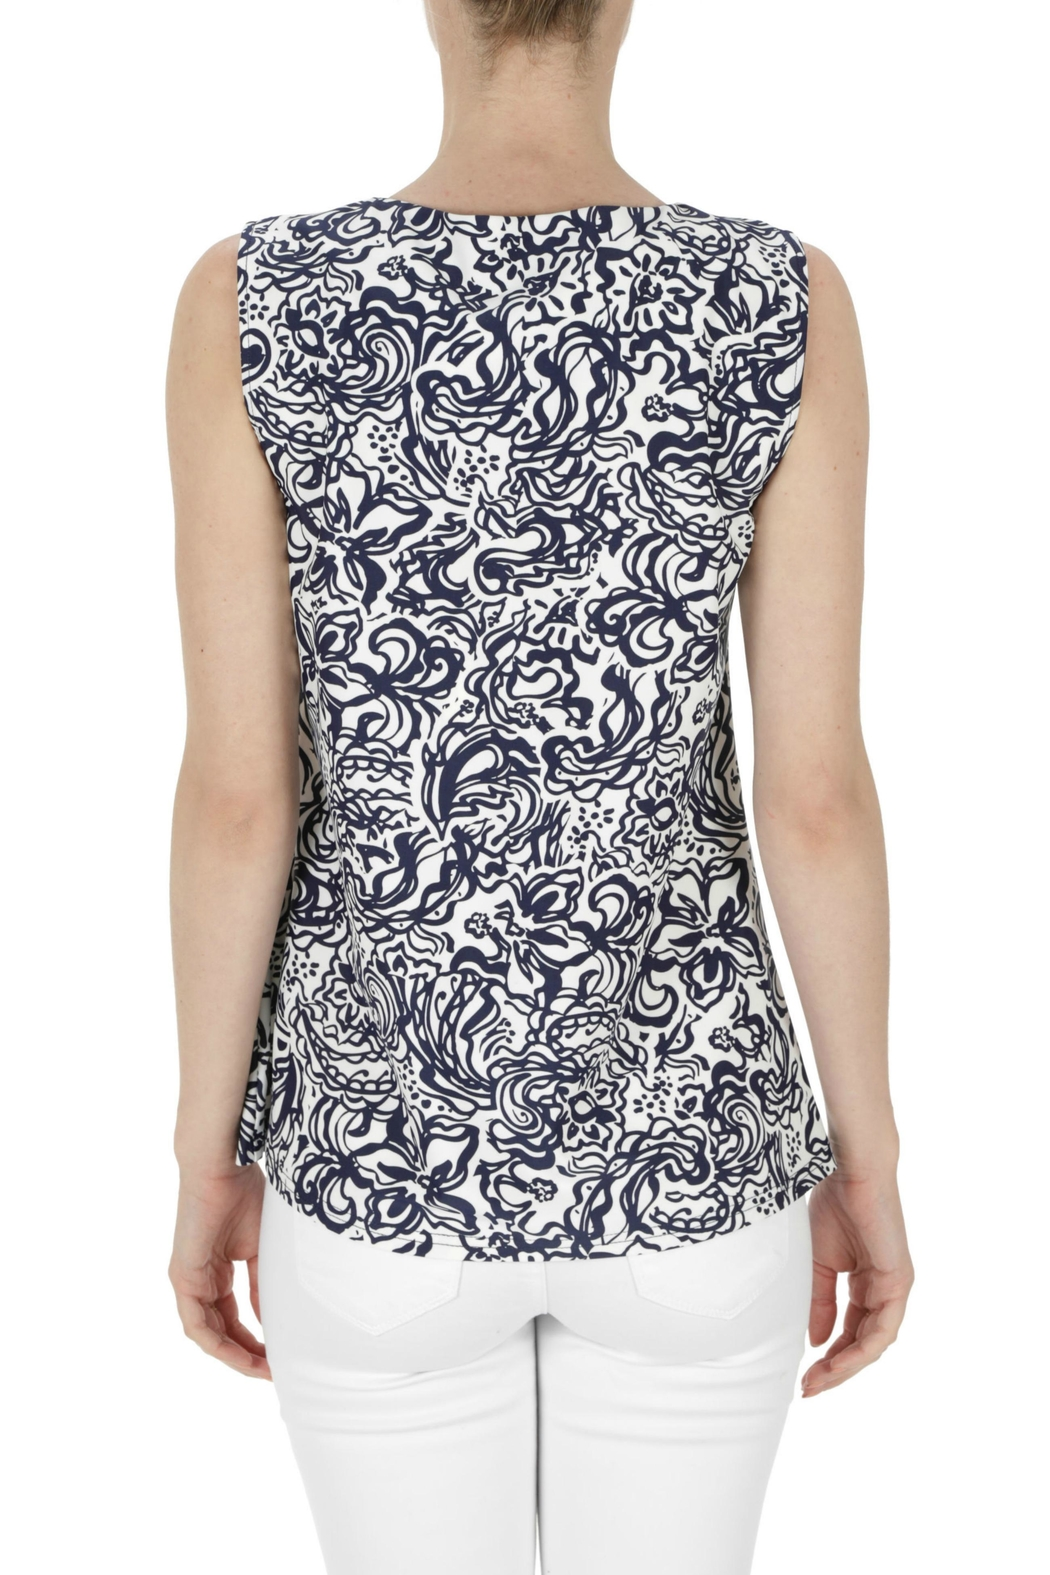 Aryeh Sleeveless Printed Top - Front Full Image